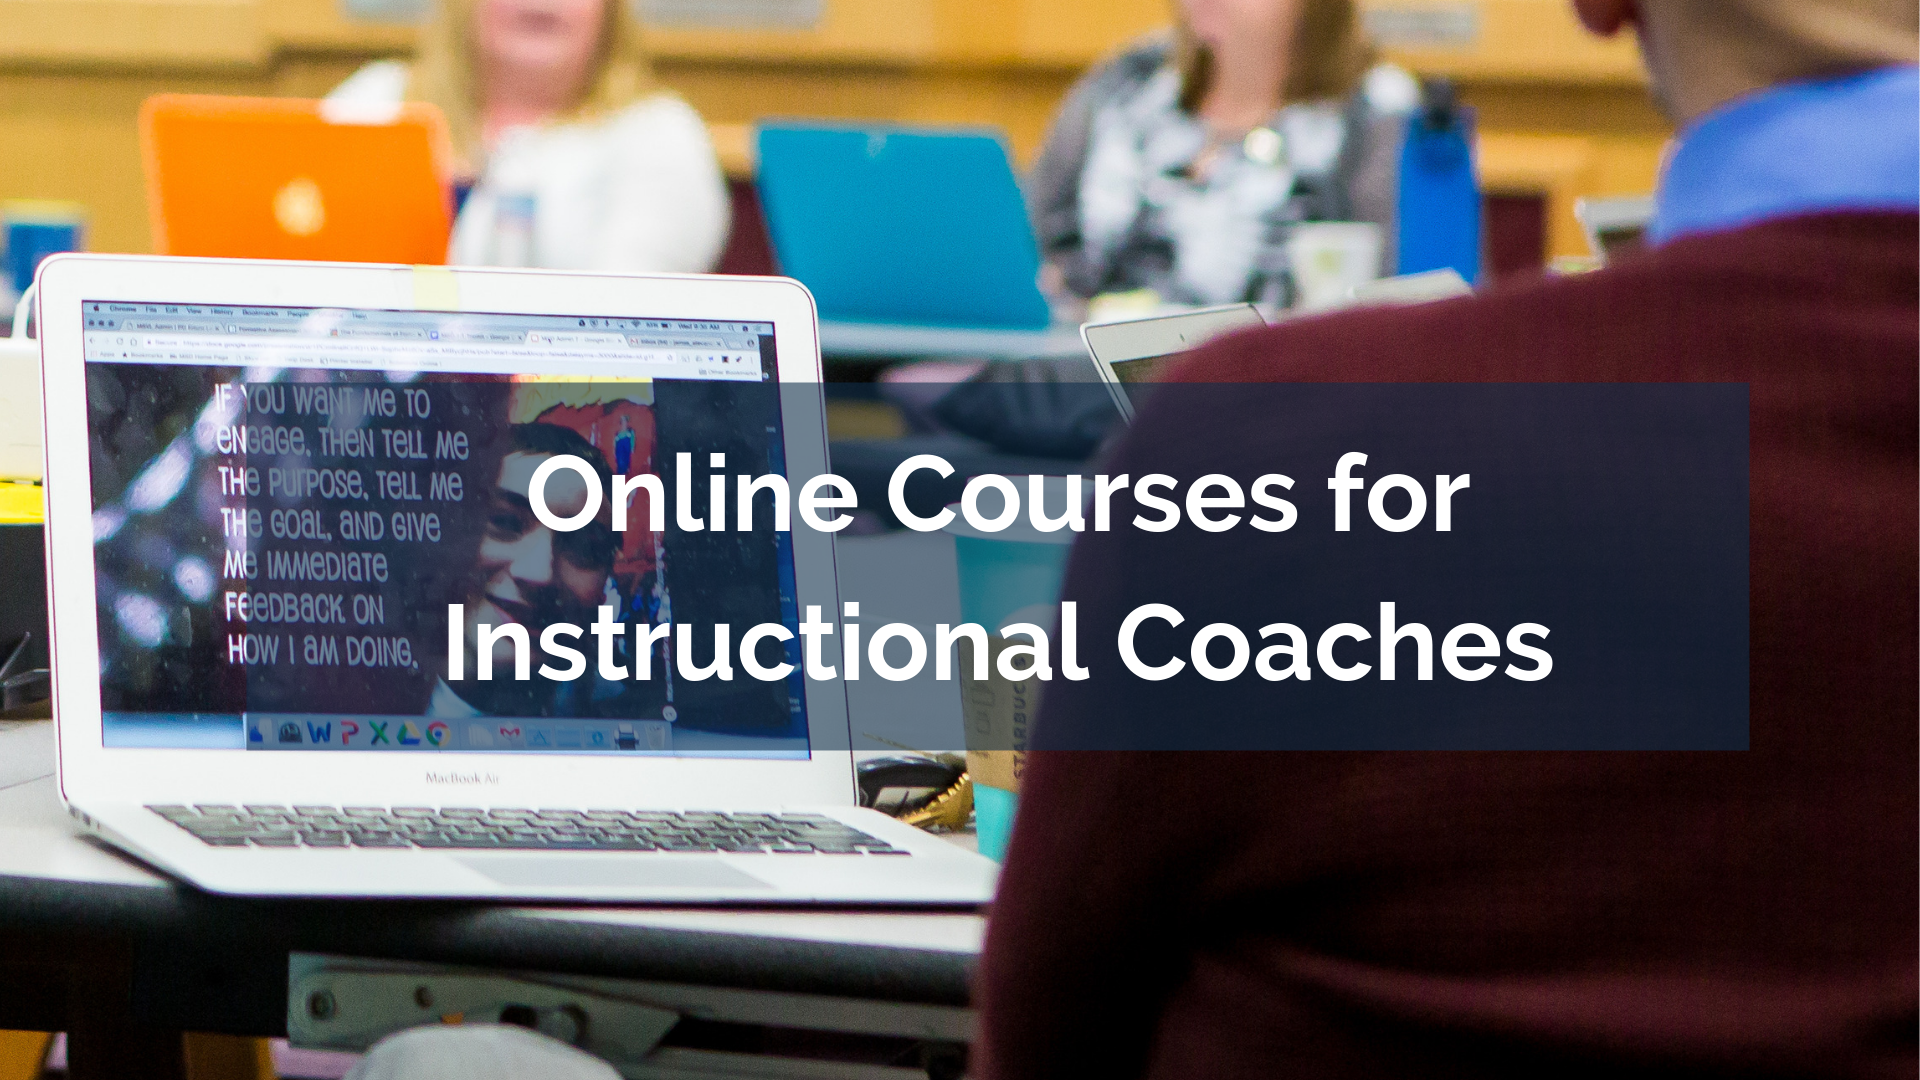 Online Courses for Instructional Coaches